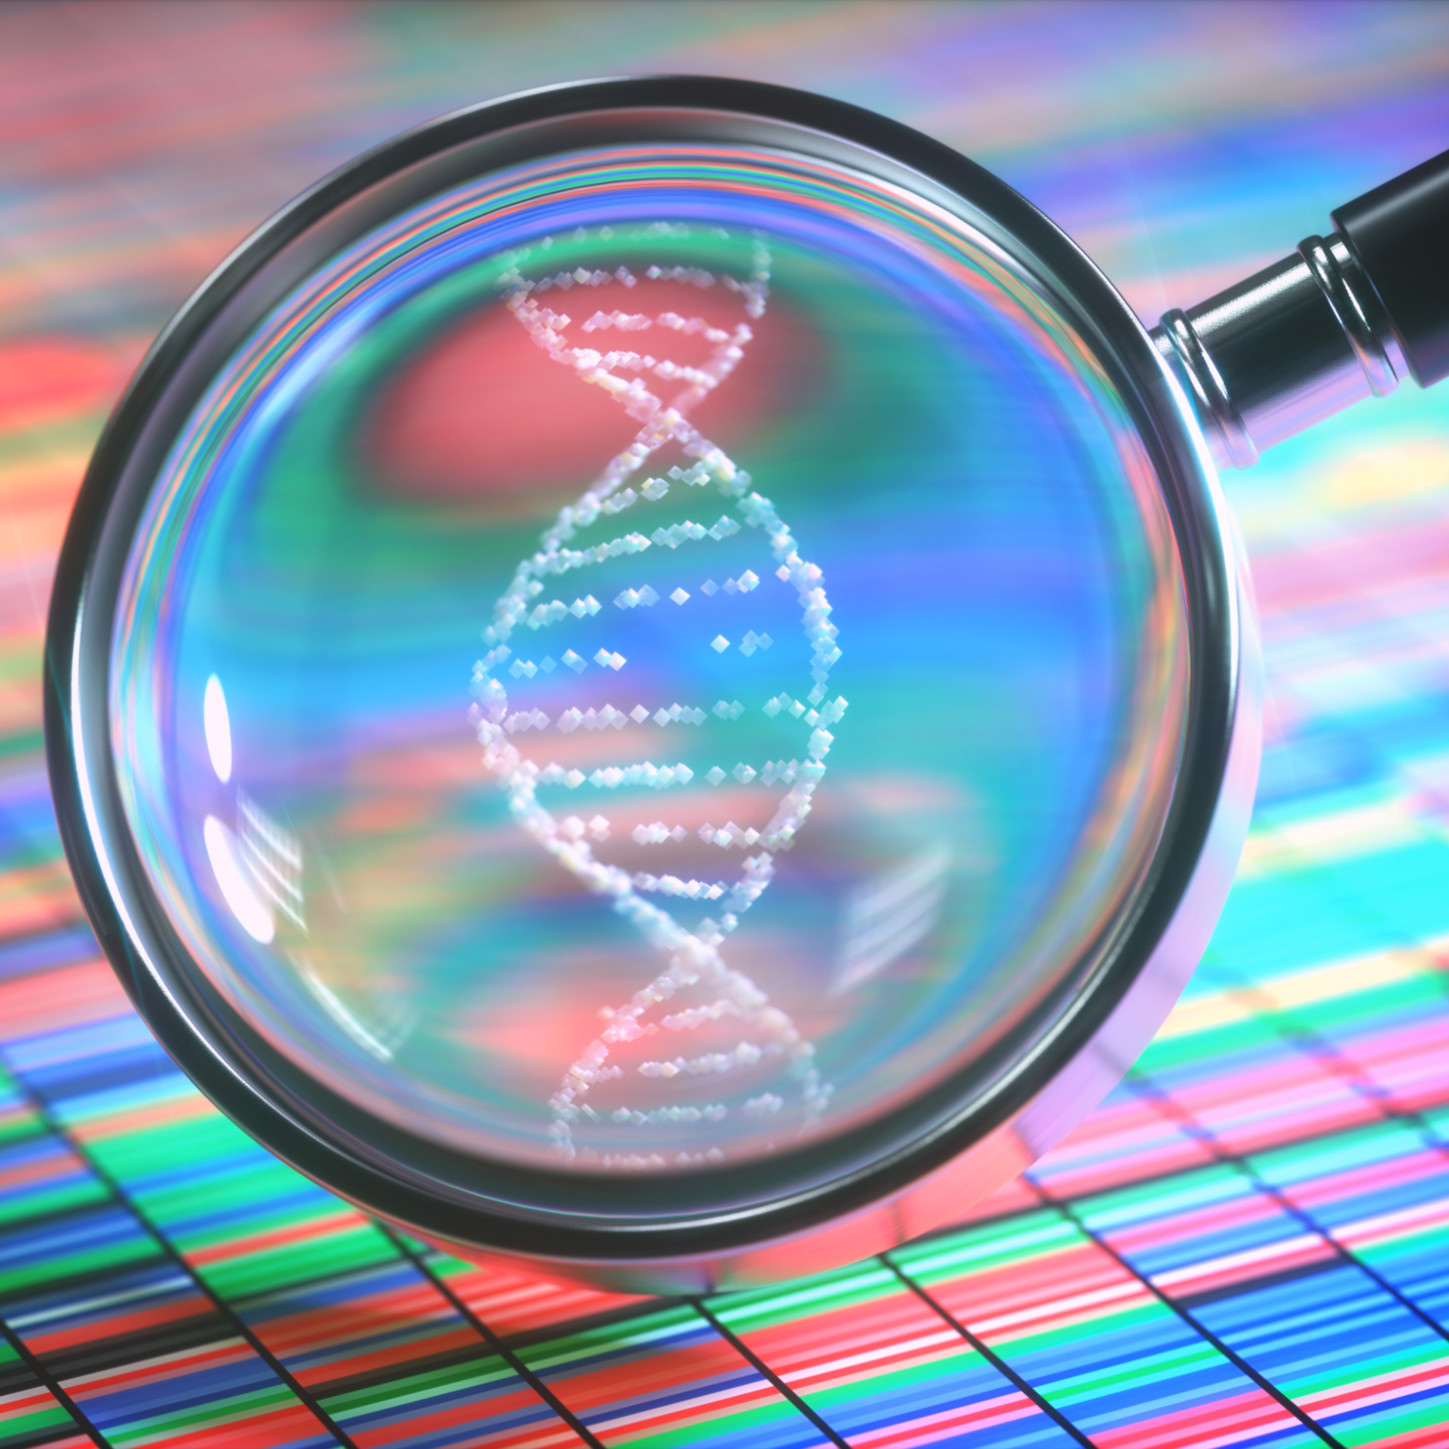 Magnifying glass enlarging an abstract digital illustration of DNA